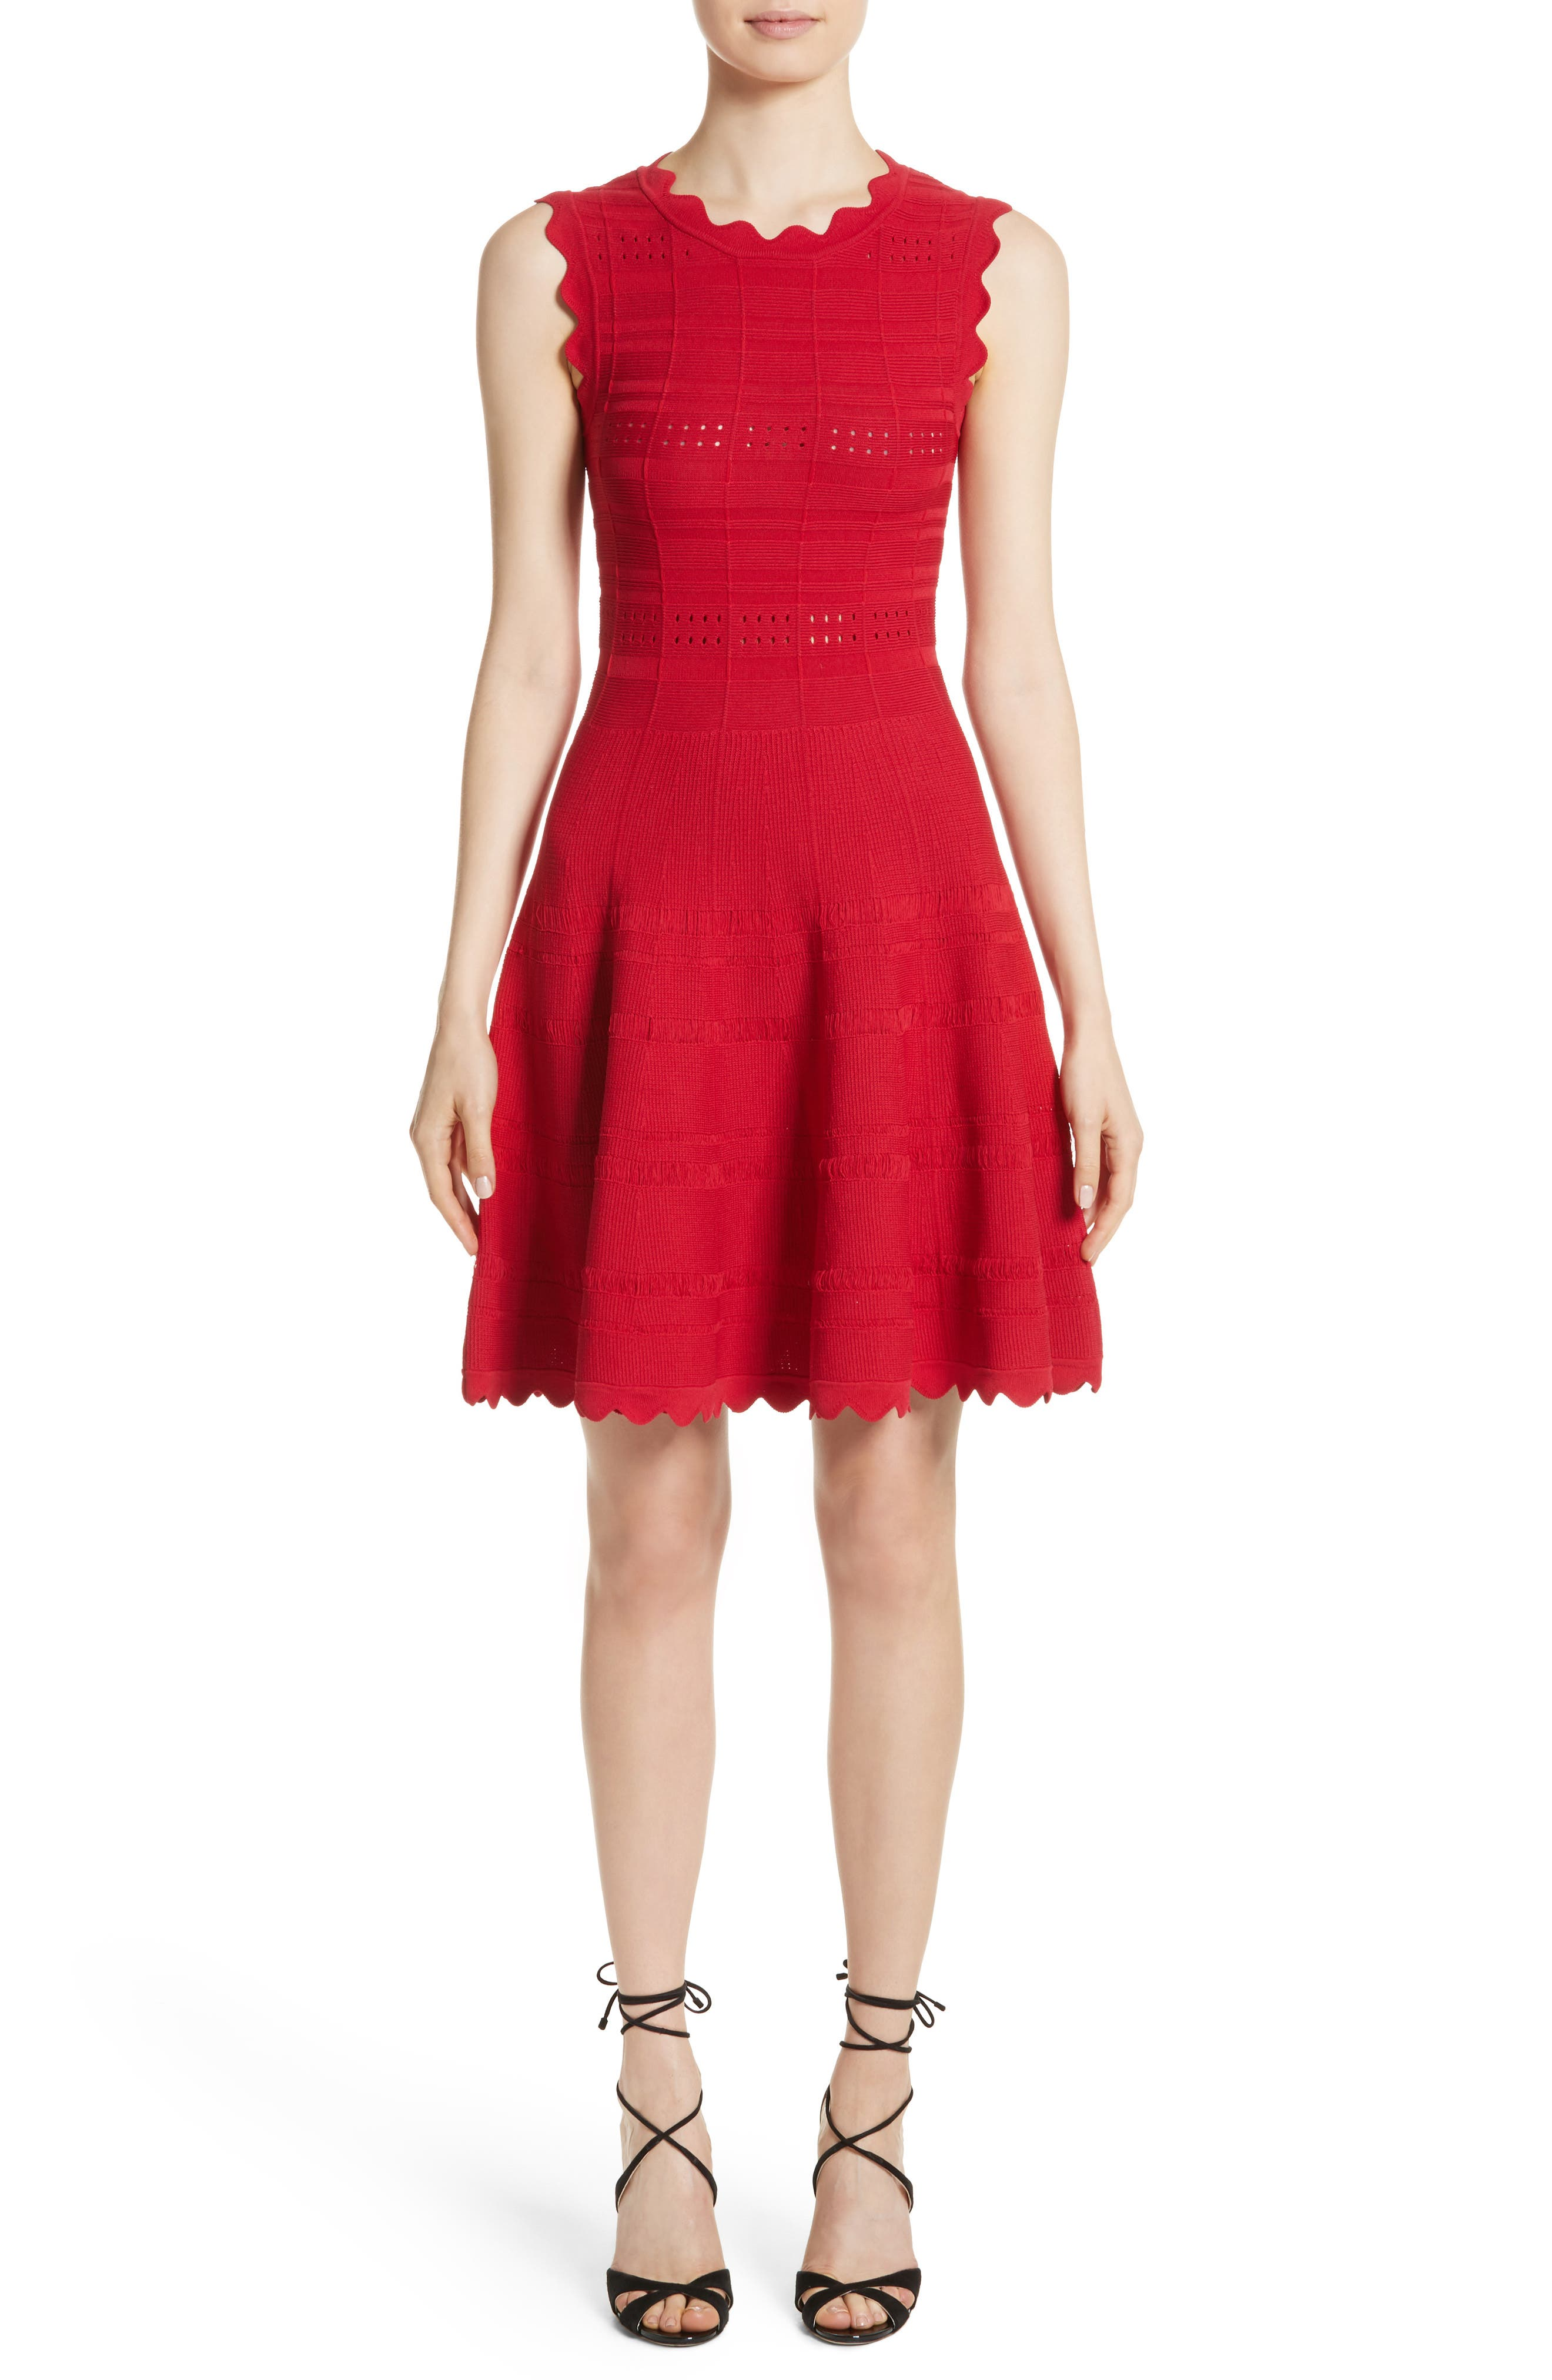 Yigal Azrouël Scallop Trim Knit Dress